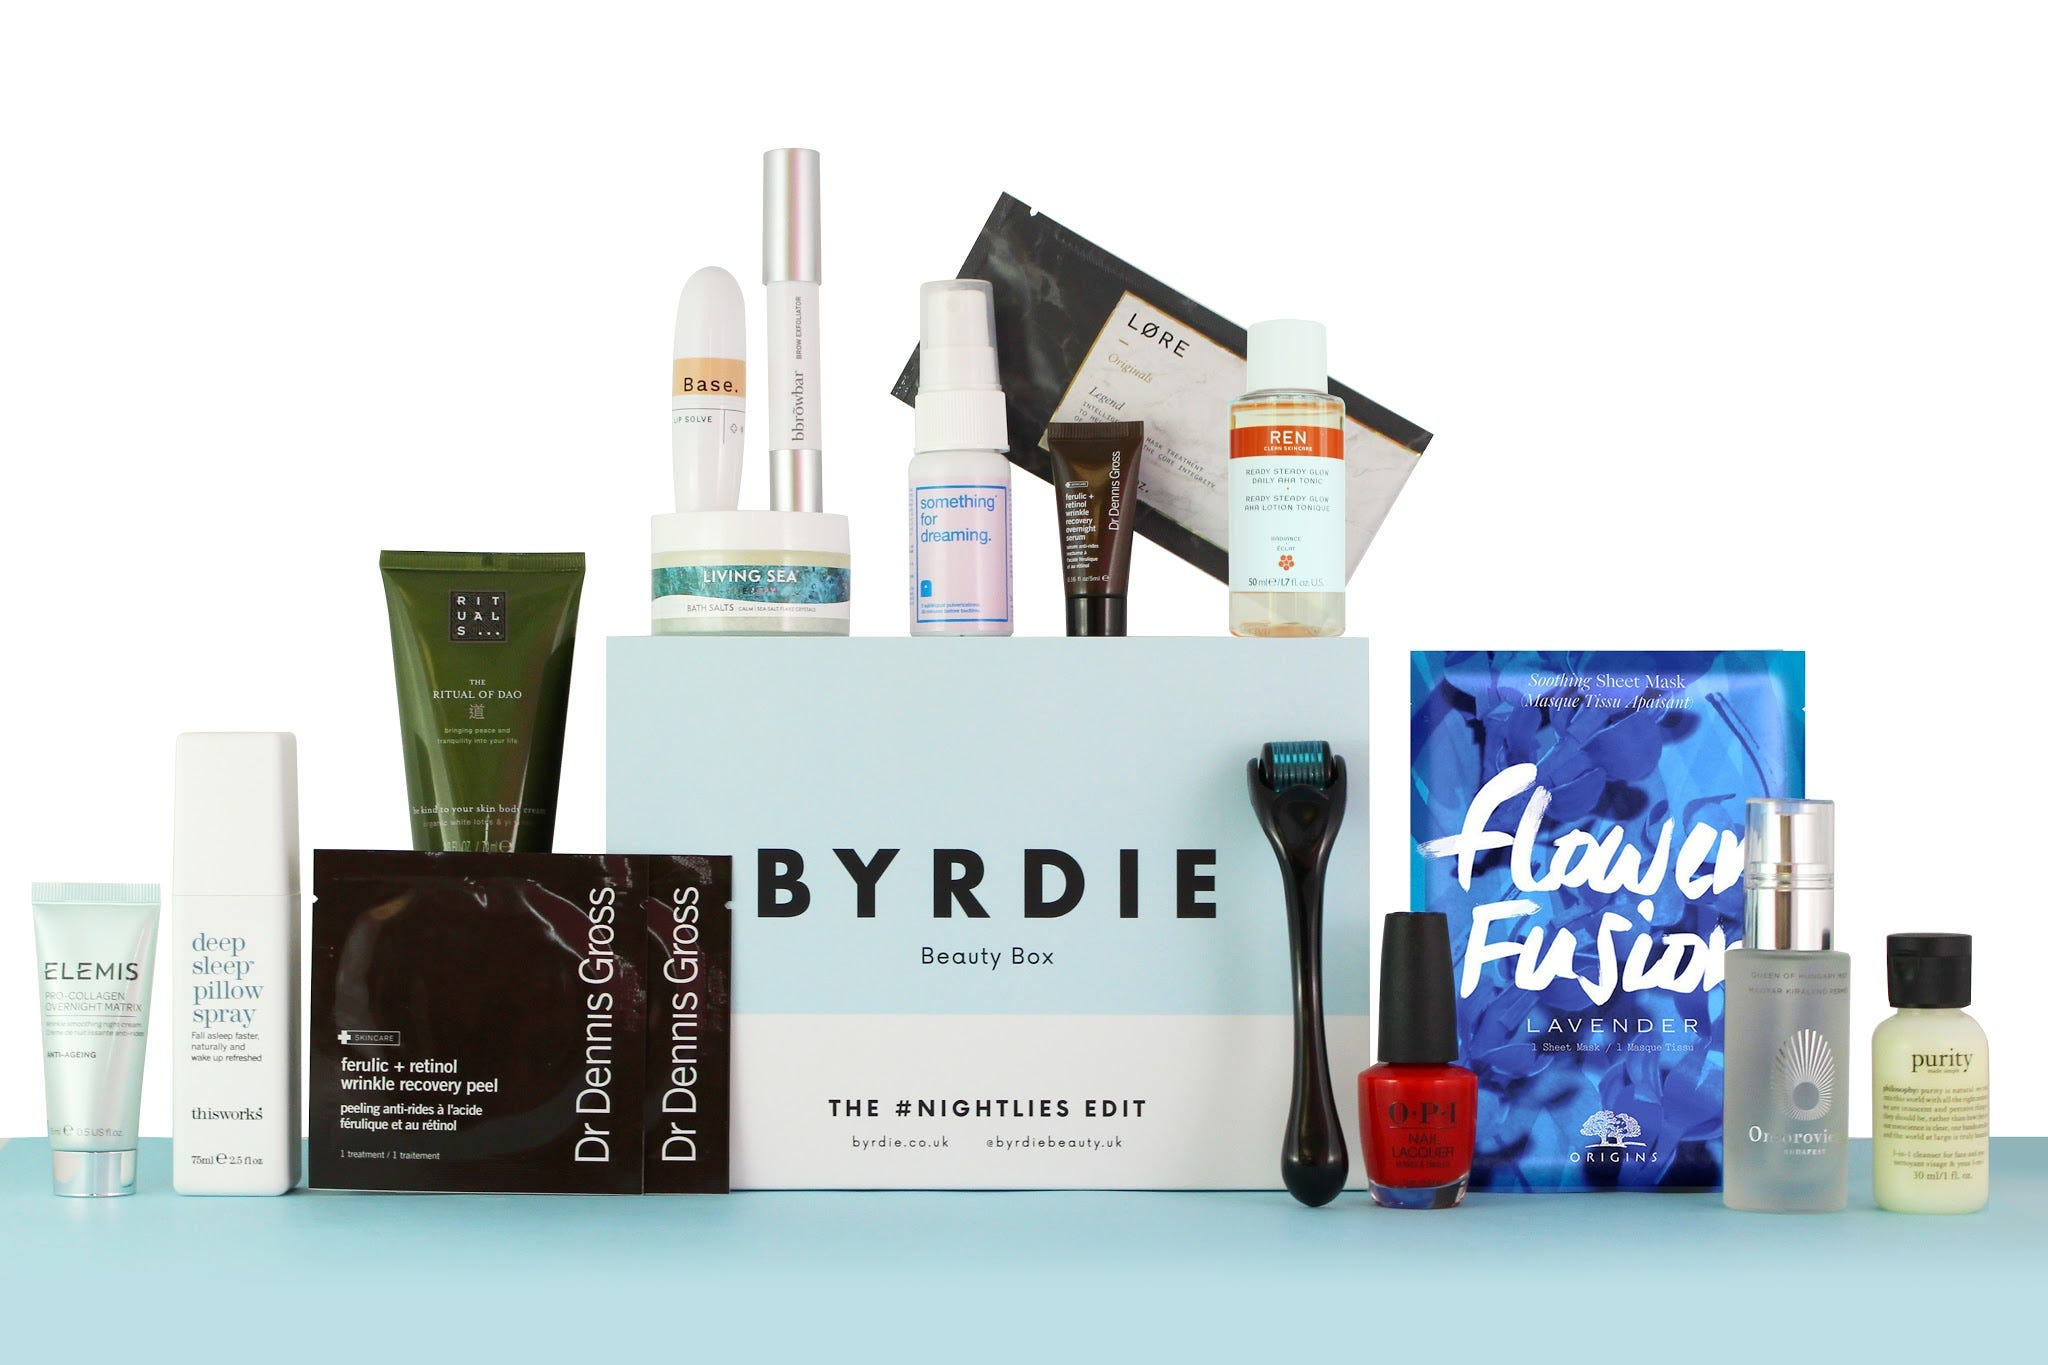 byrdie-beauty-box-sale